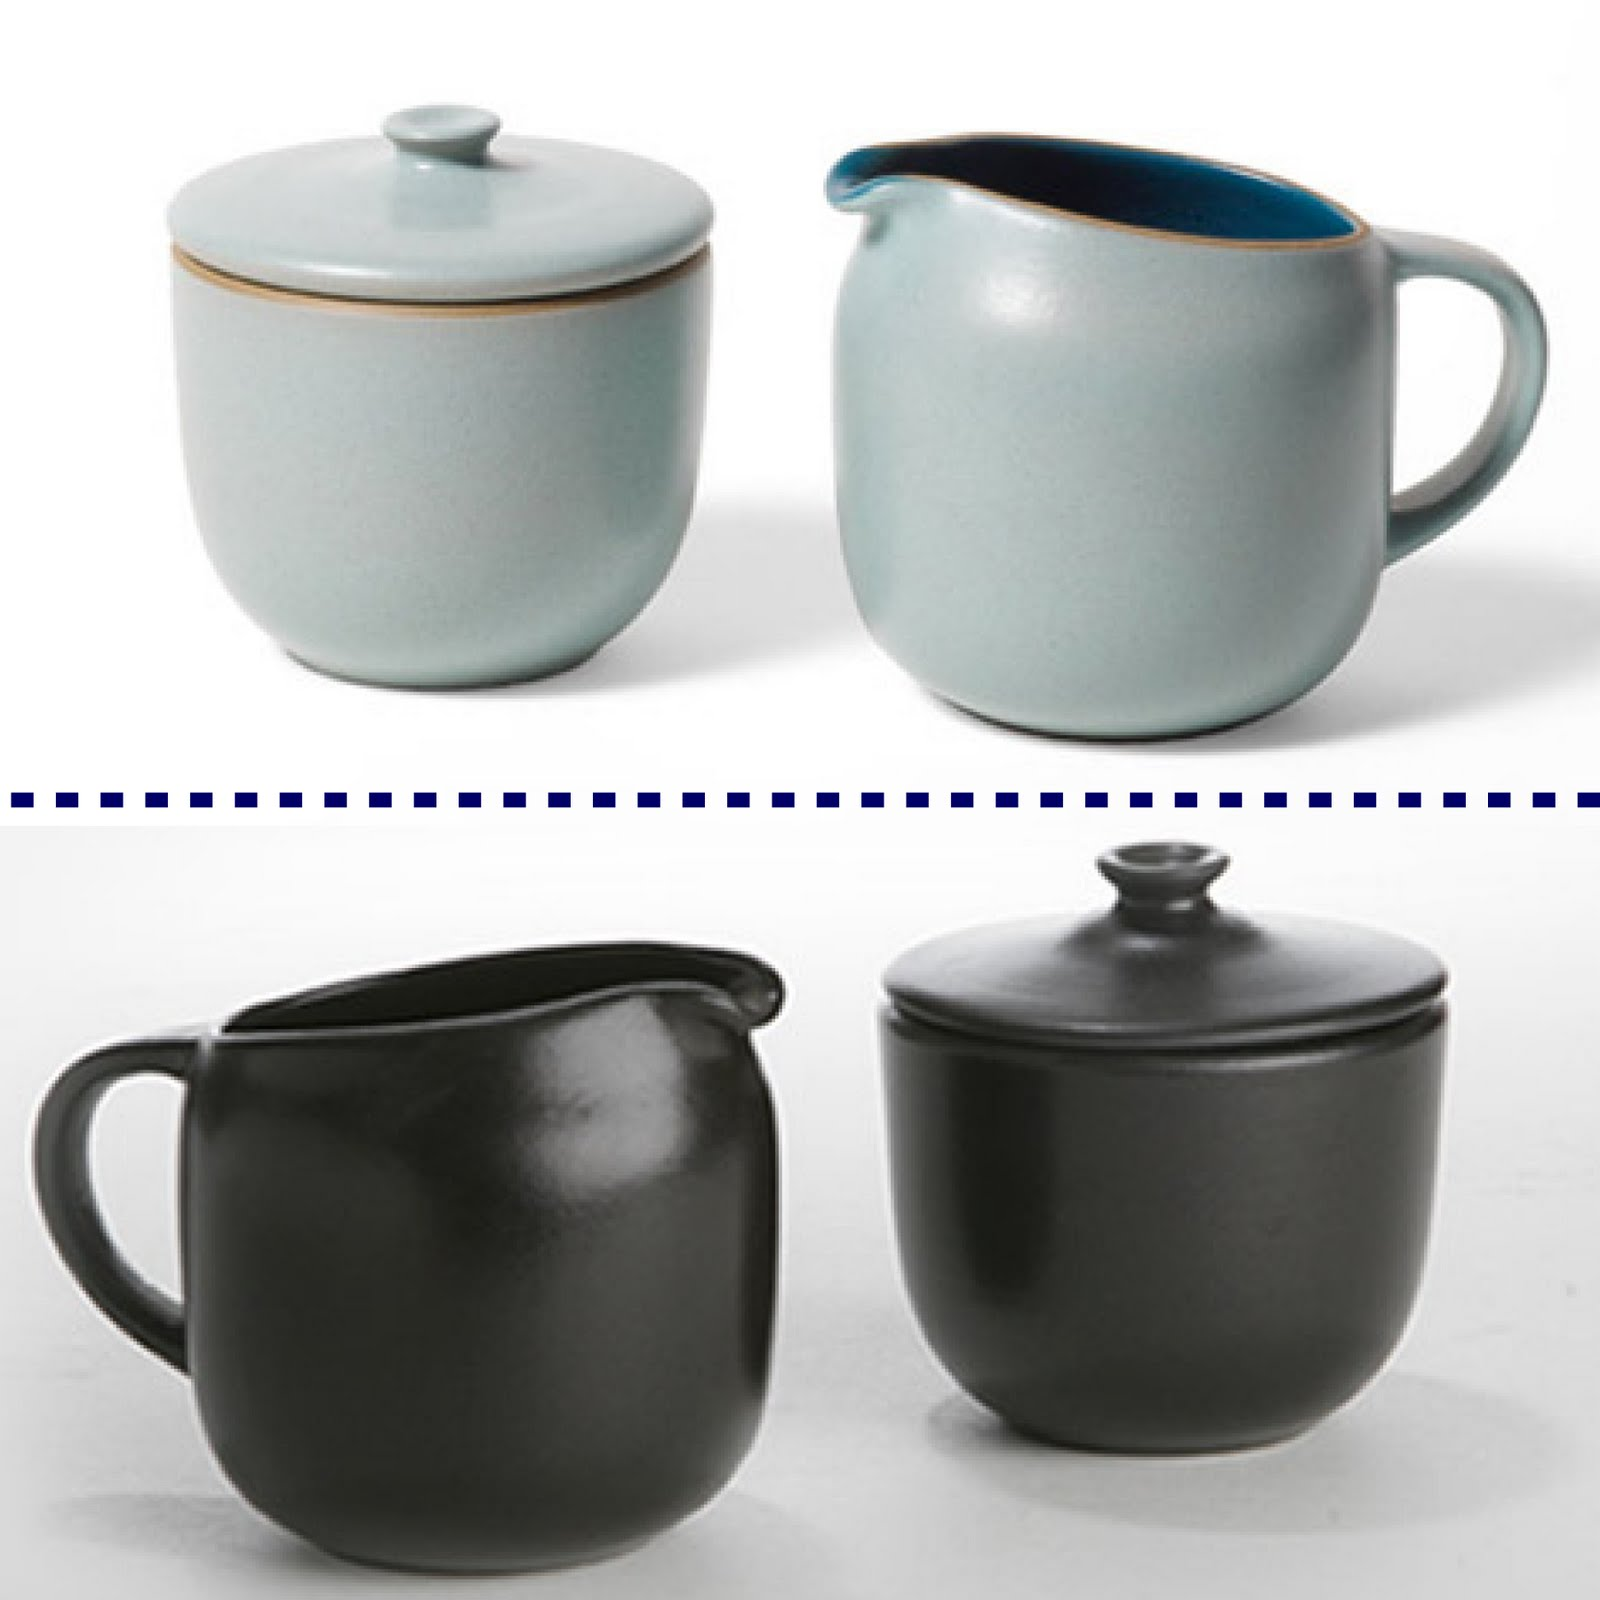 Sugar Bowl And Creamer In Linen Glaze Smooth Lines Feel Perfect The Hand Clic Shape Is Sure To Stand Test Of Time